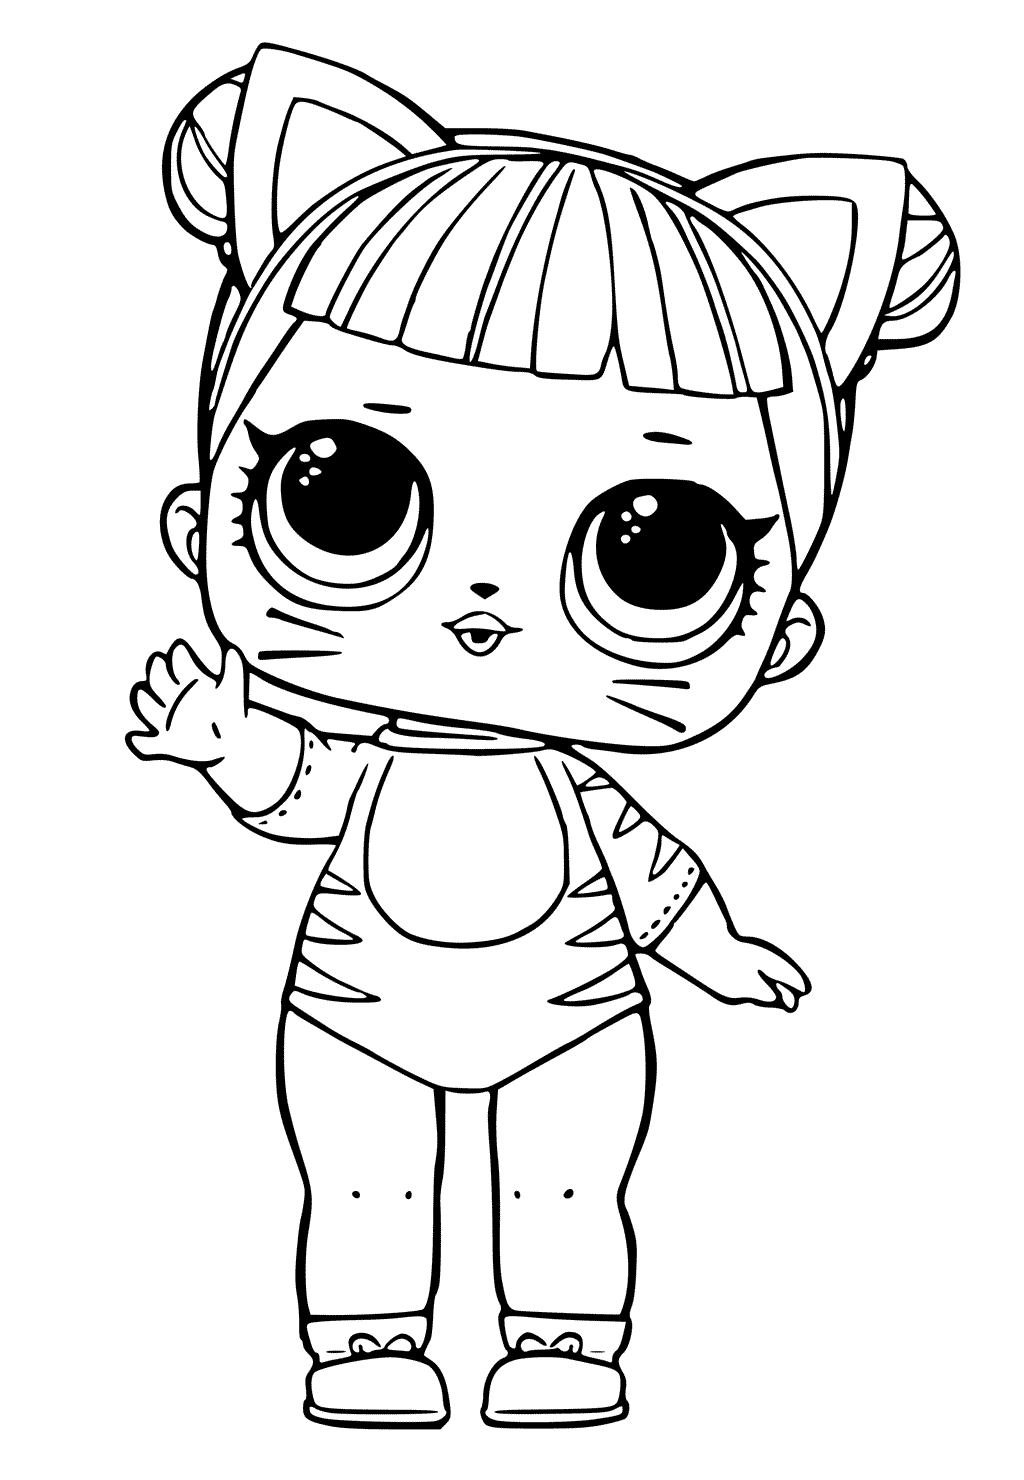 Doll Coloring Pages To Print